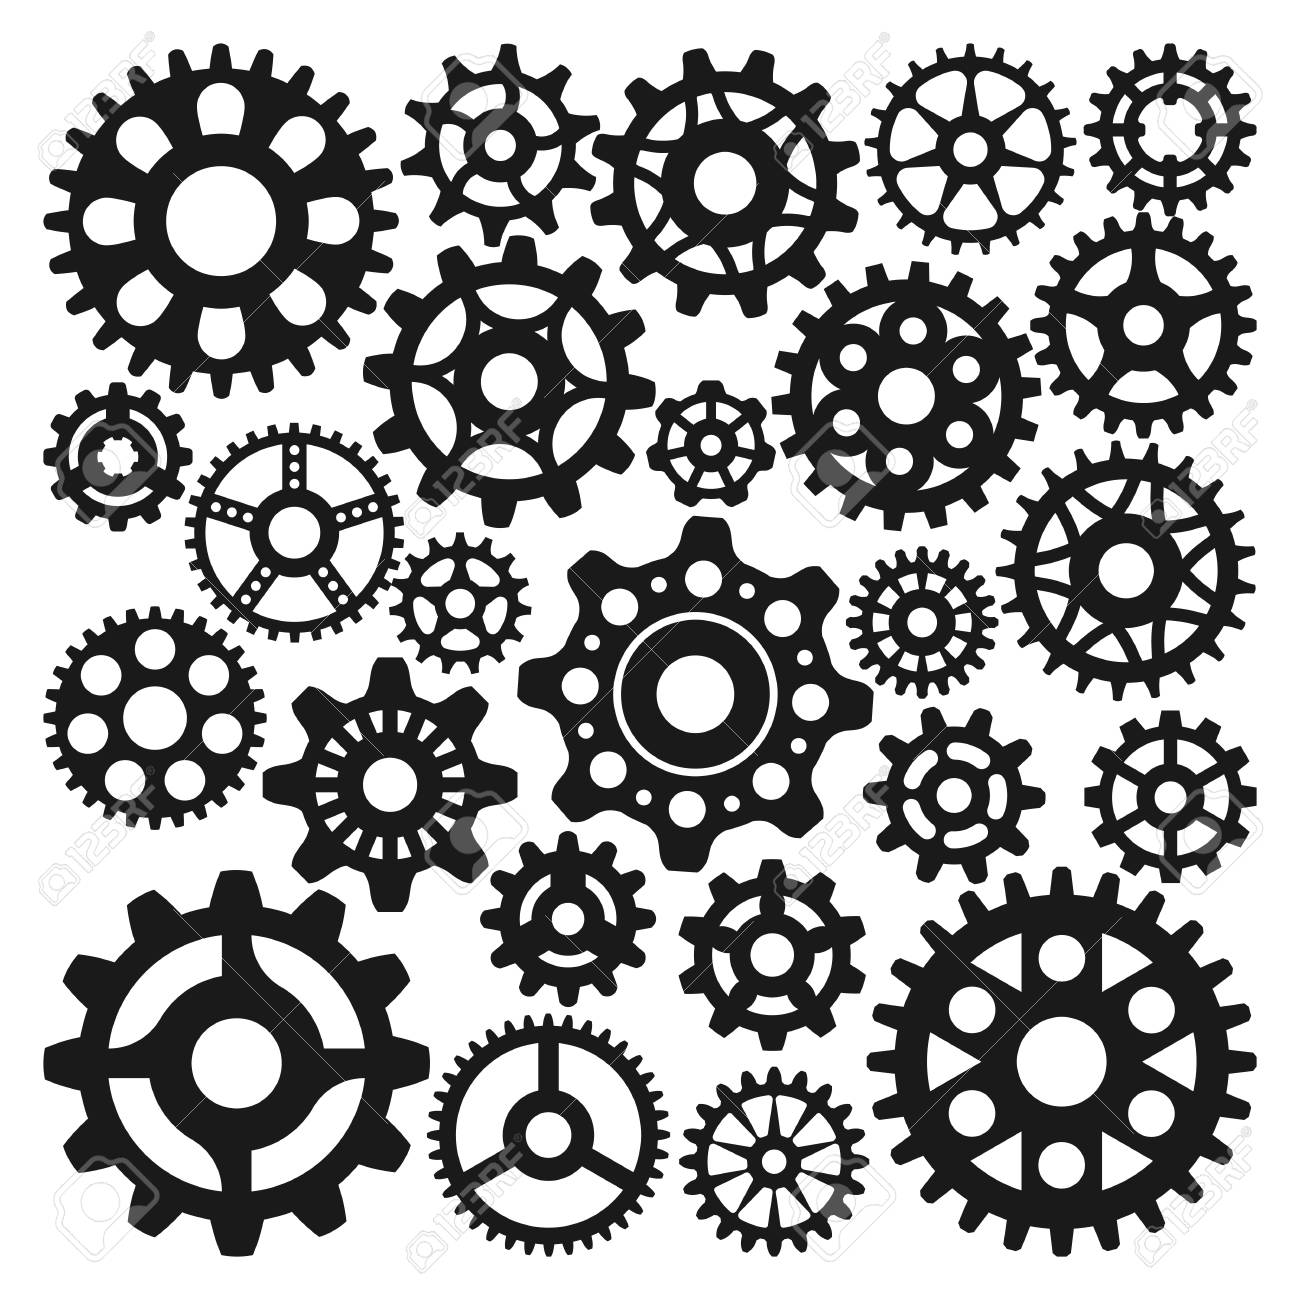 Black gear icons isolated illustration. - 69017552